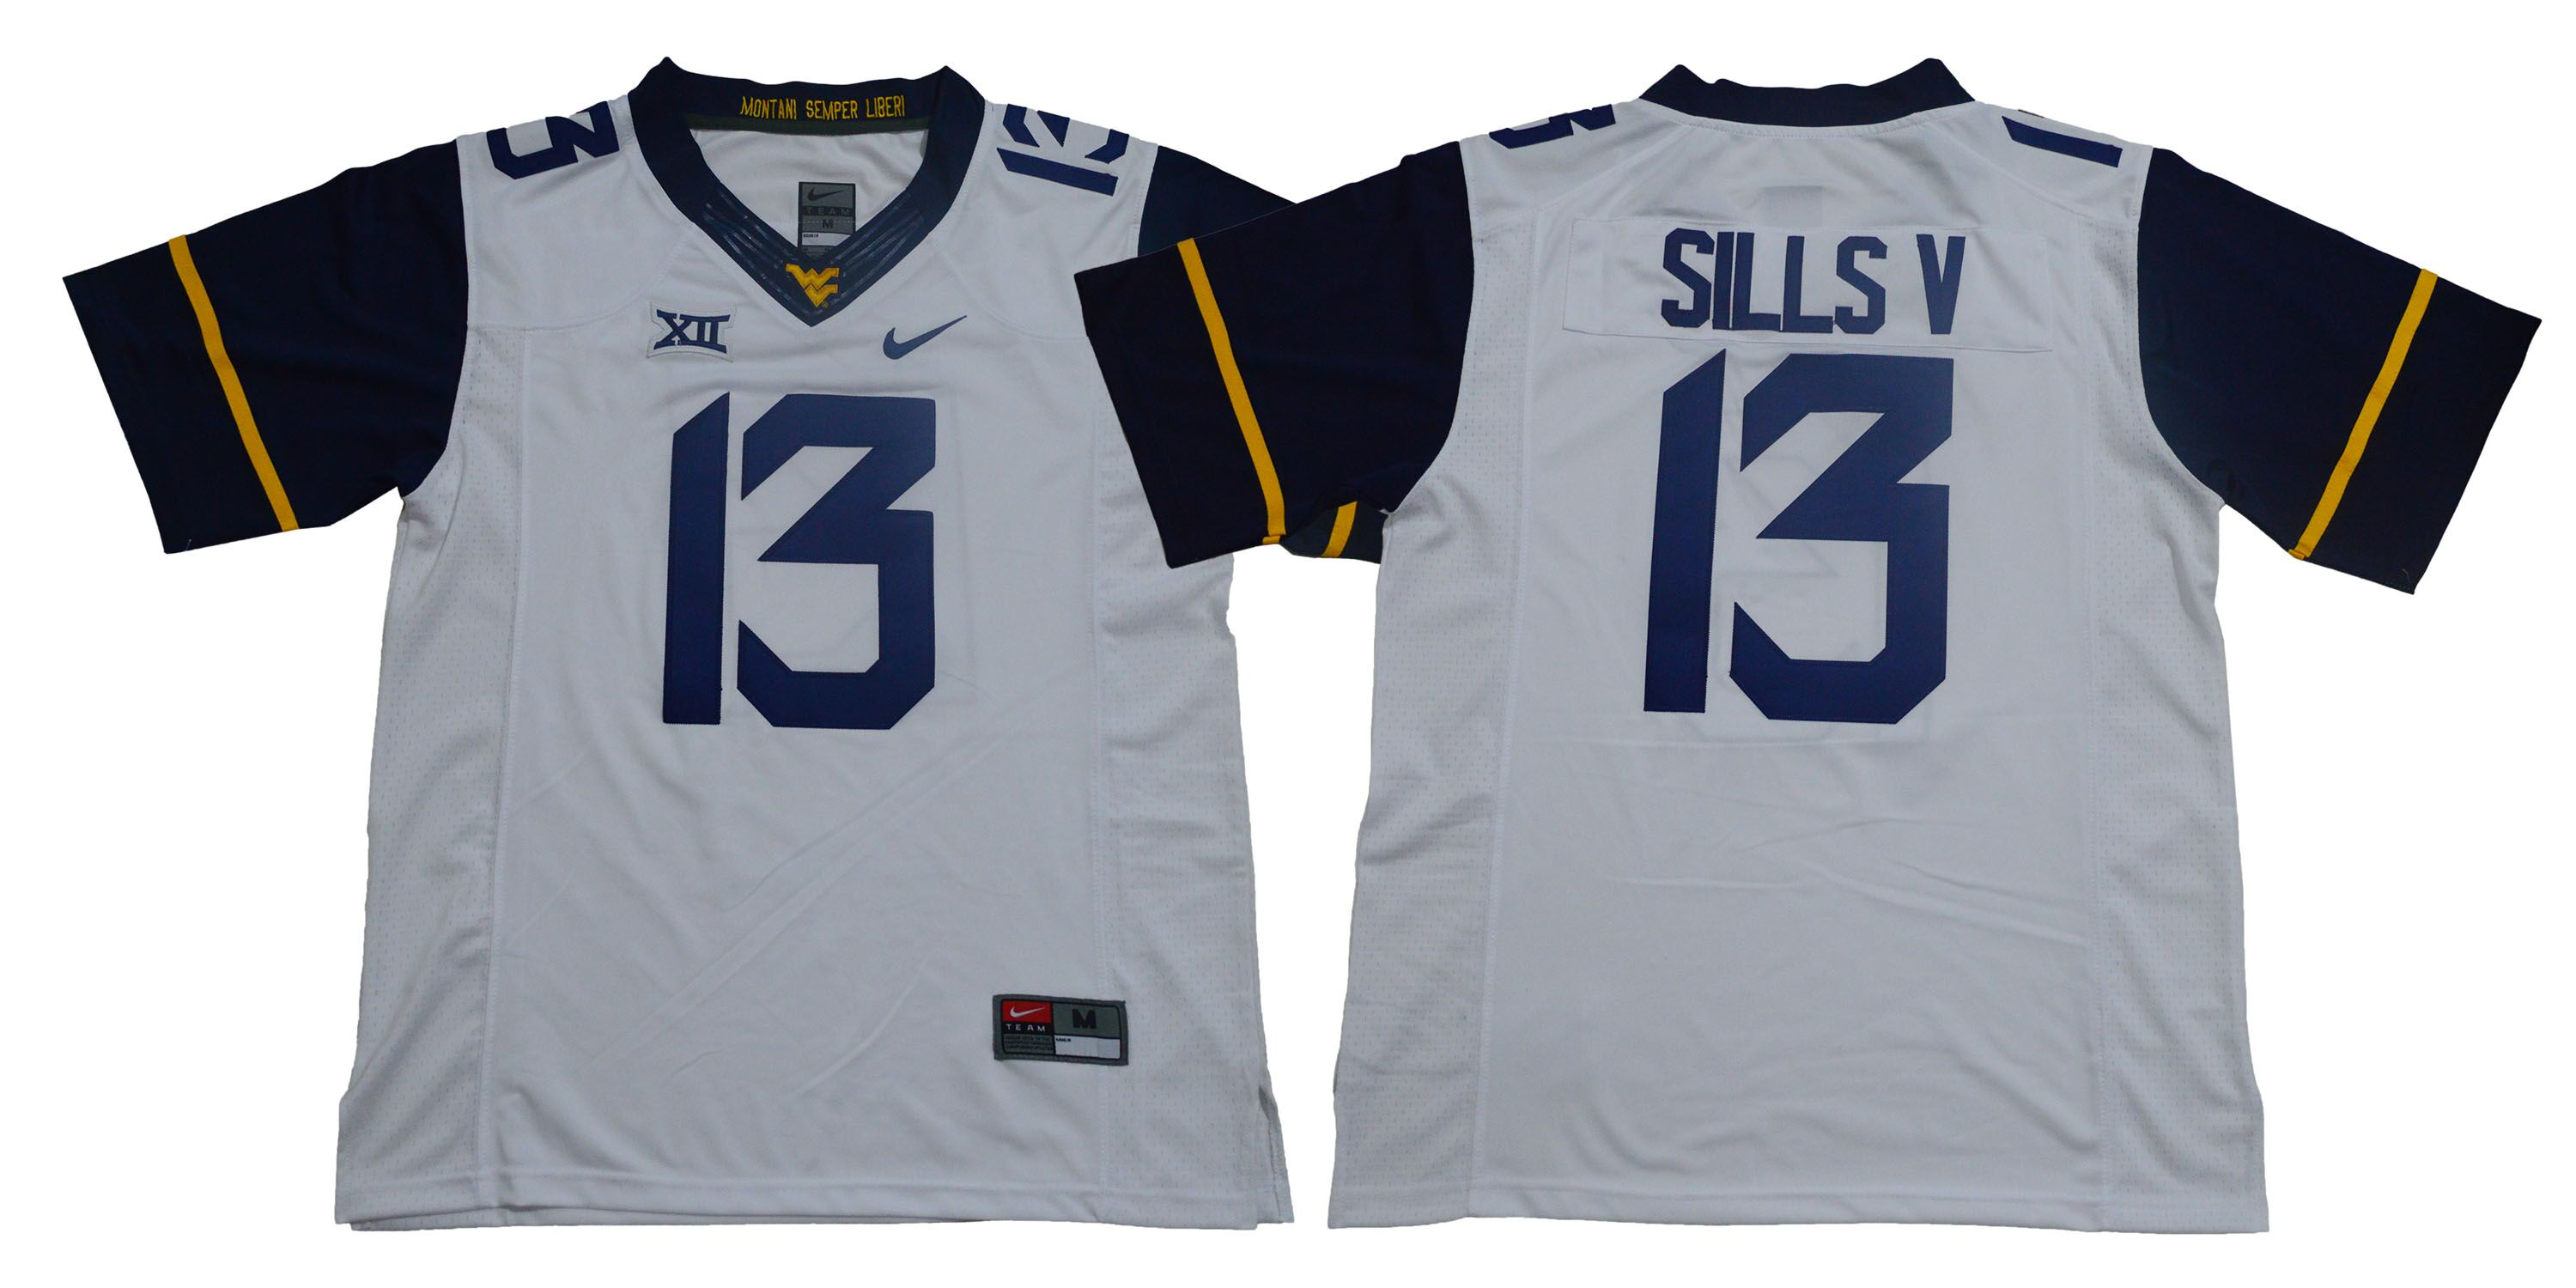 West Virginia Mountaineers 13 David Sills V White Nike College Football Jersey